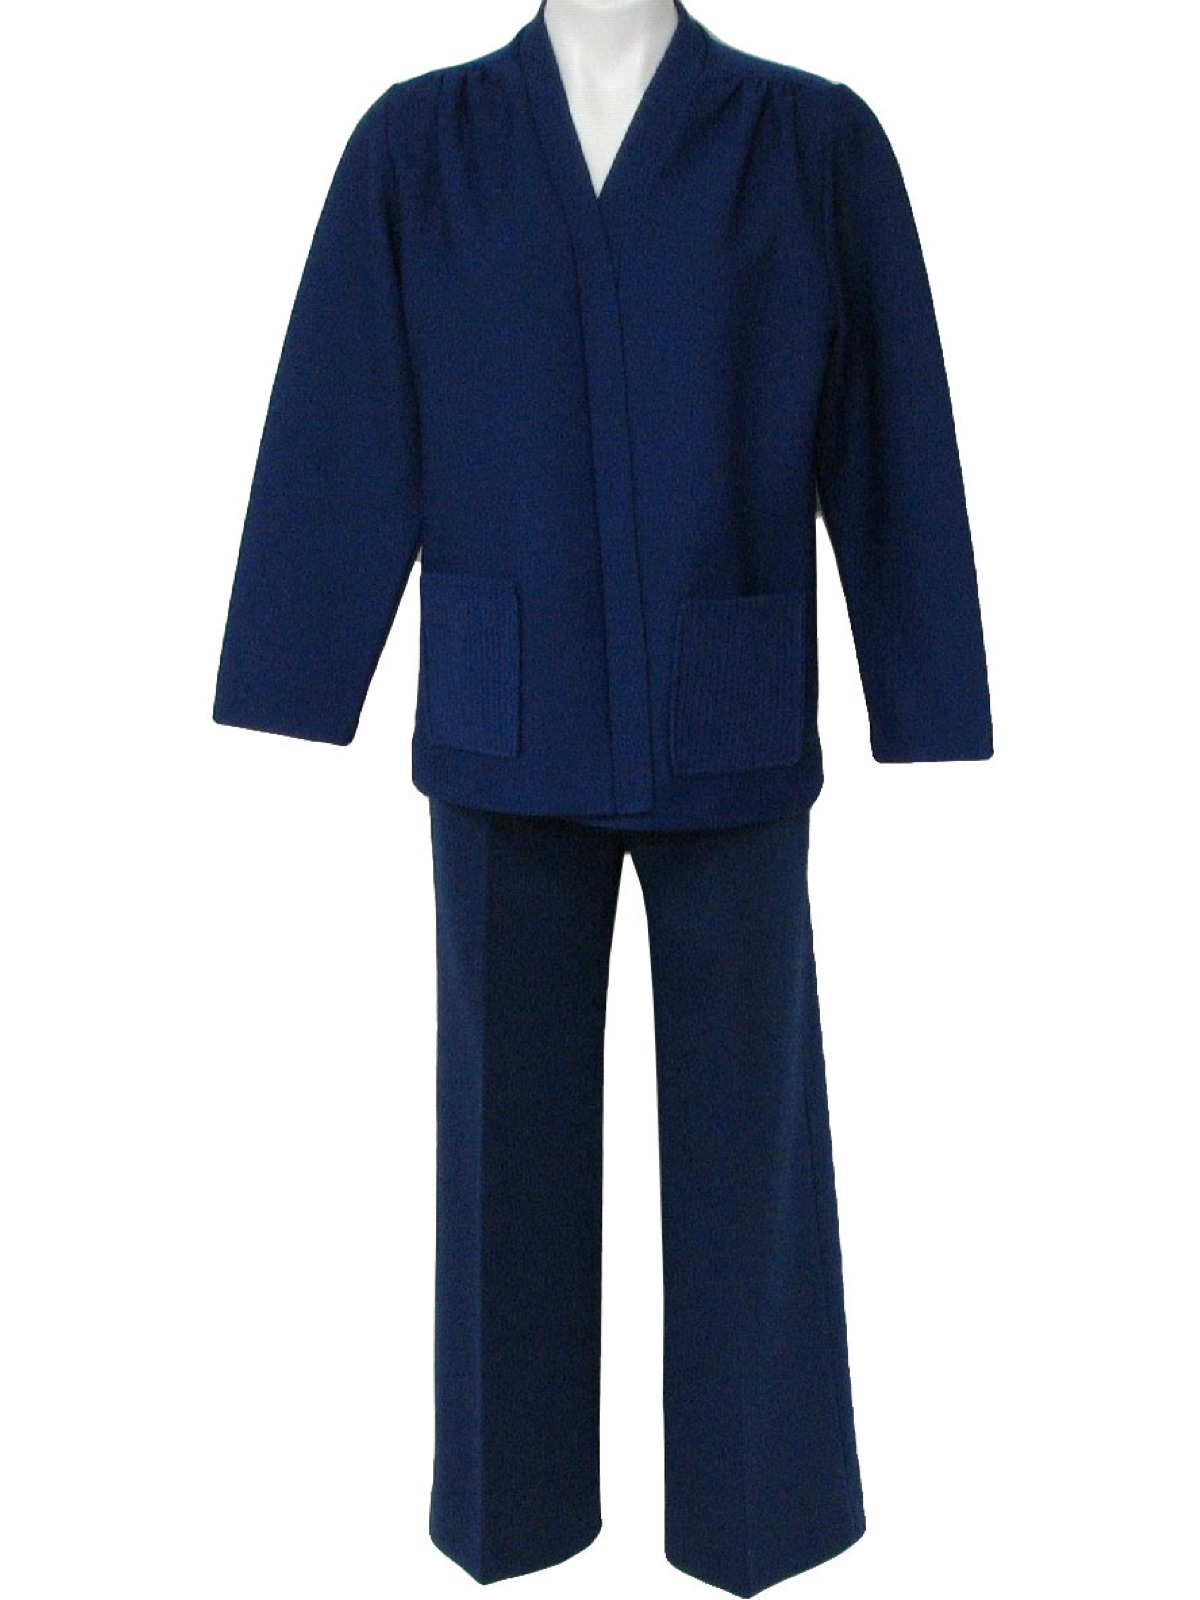 Fantastic  Similar To 1960s Women39s Navy Blue Wool Tailored Pant Suit On Etsy